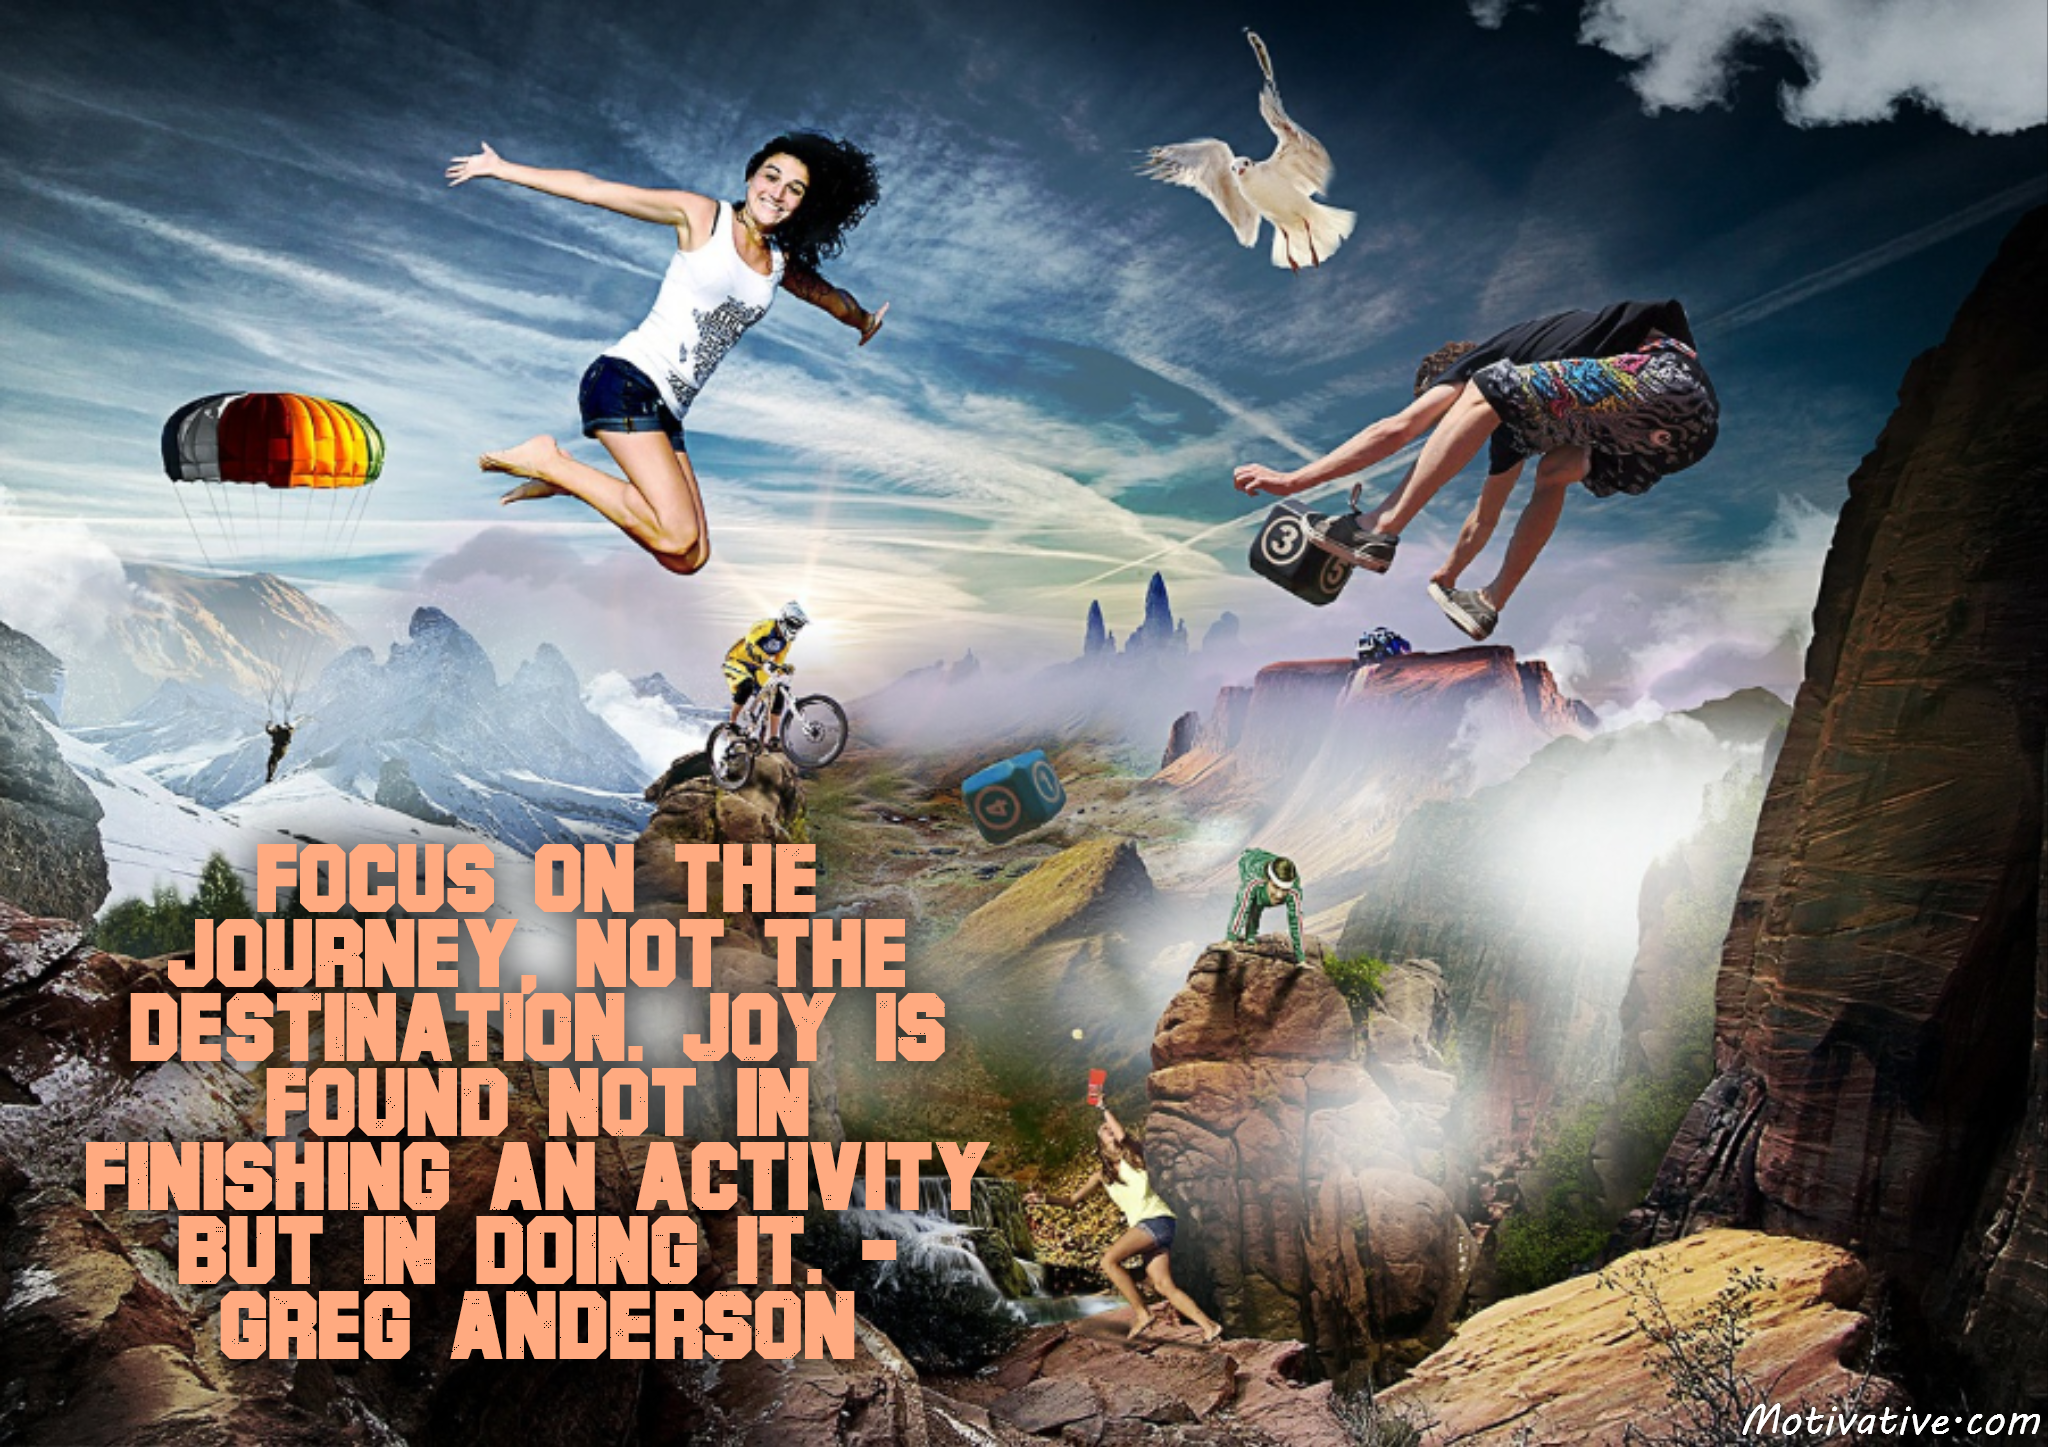 Focus on the journey, not the destination. Joy is found not in finishing an activity but in doing it. – Greg Anderson